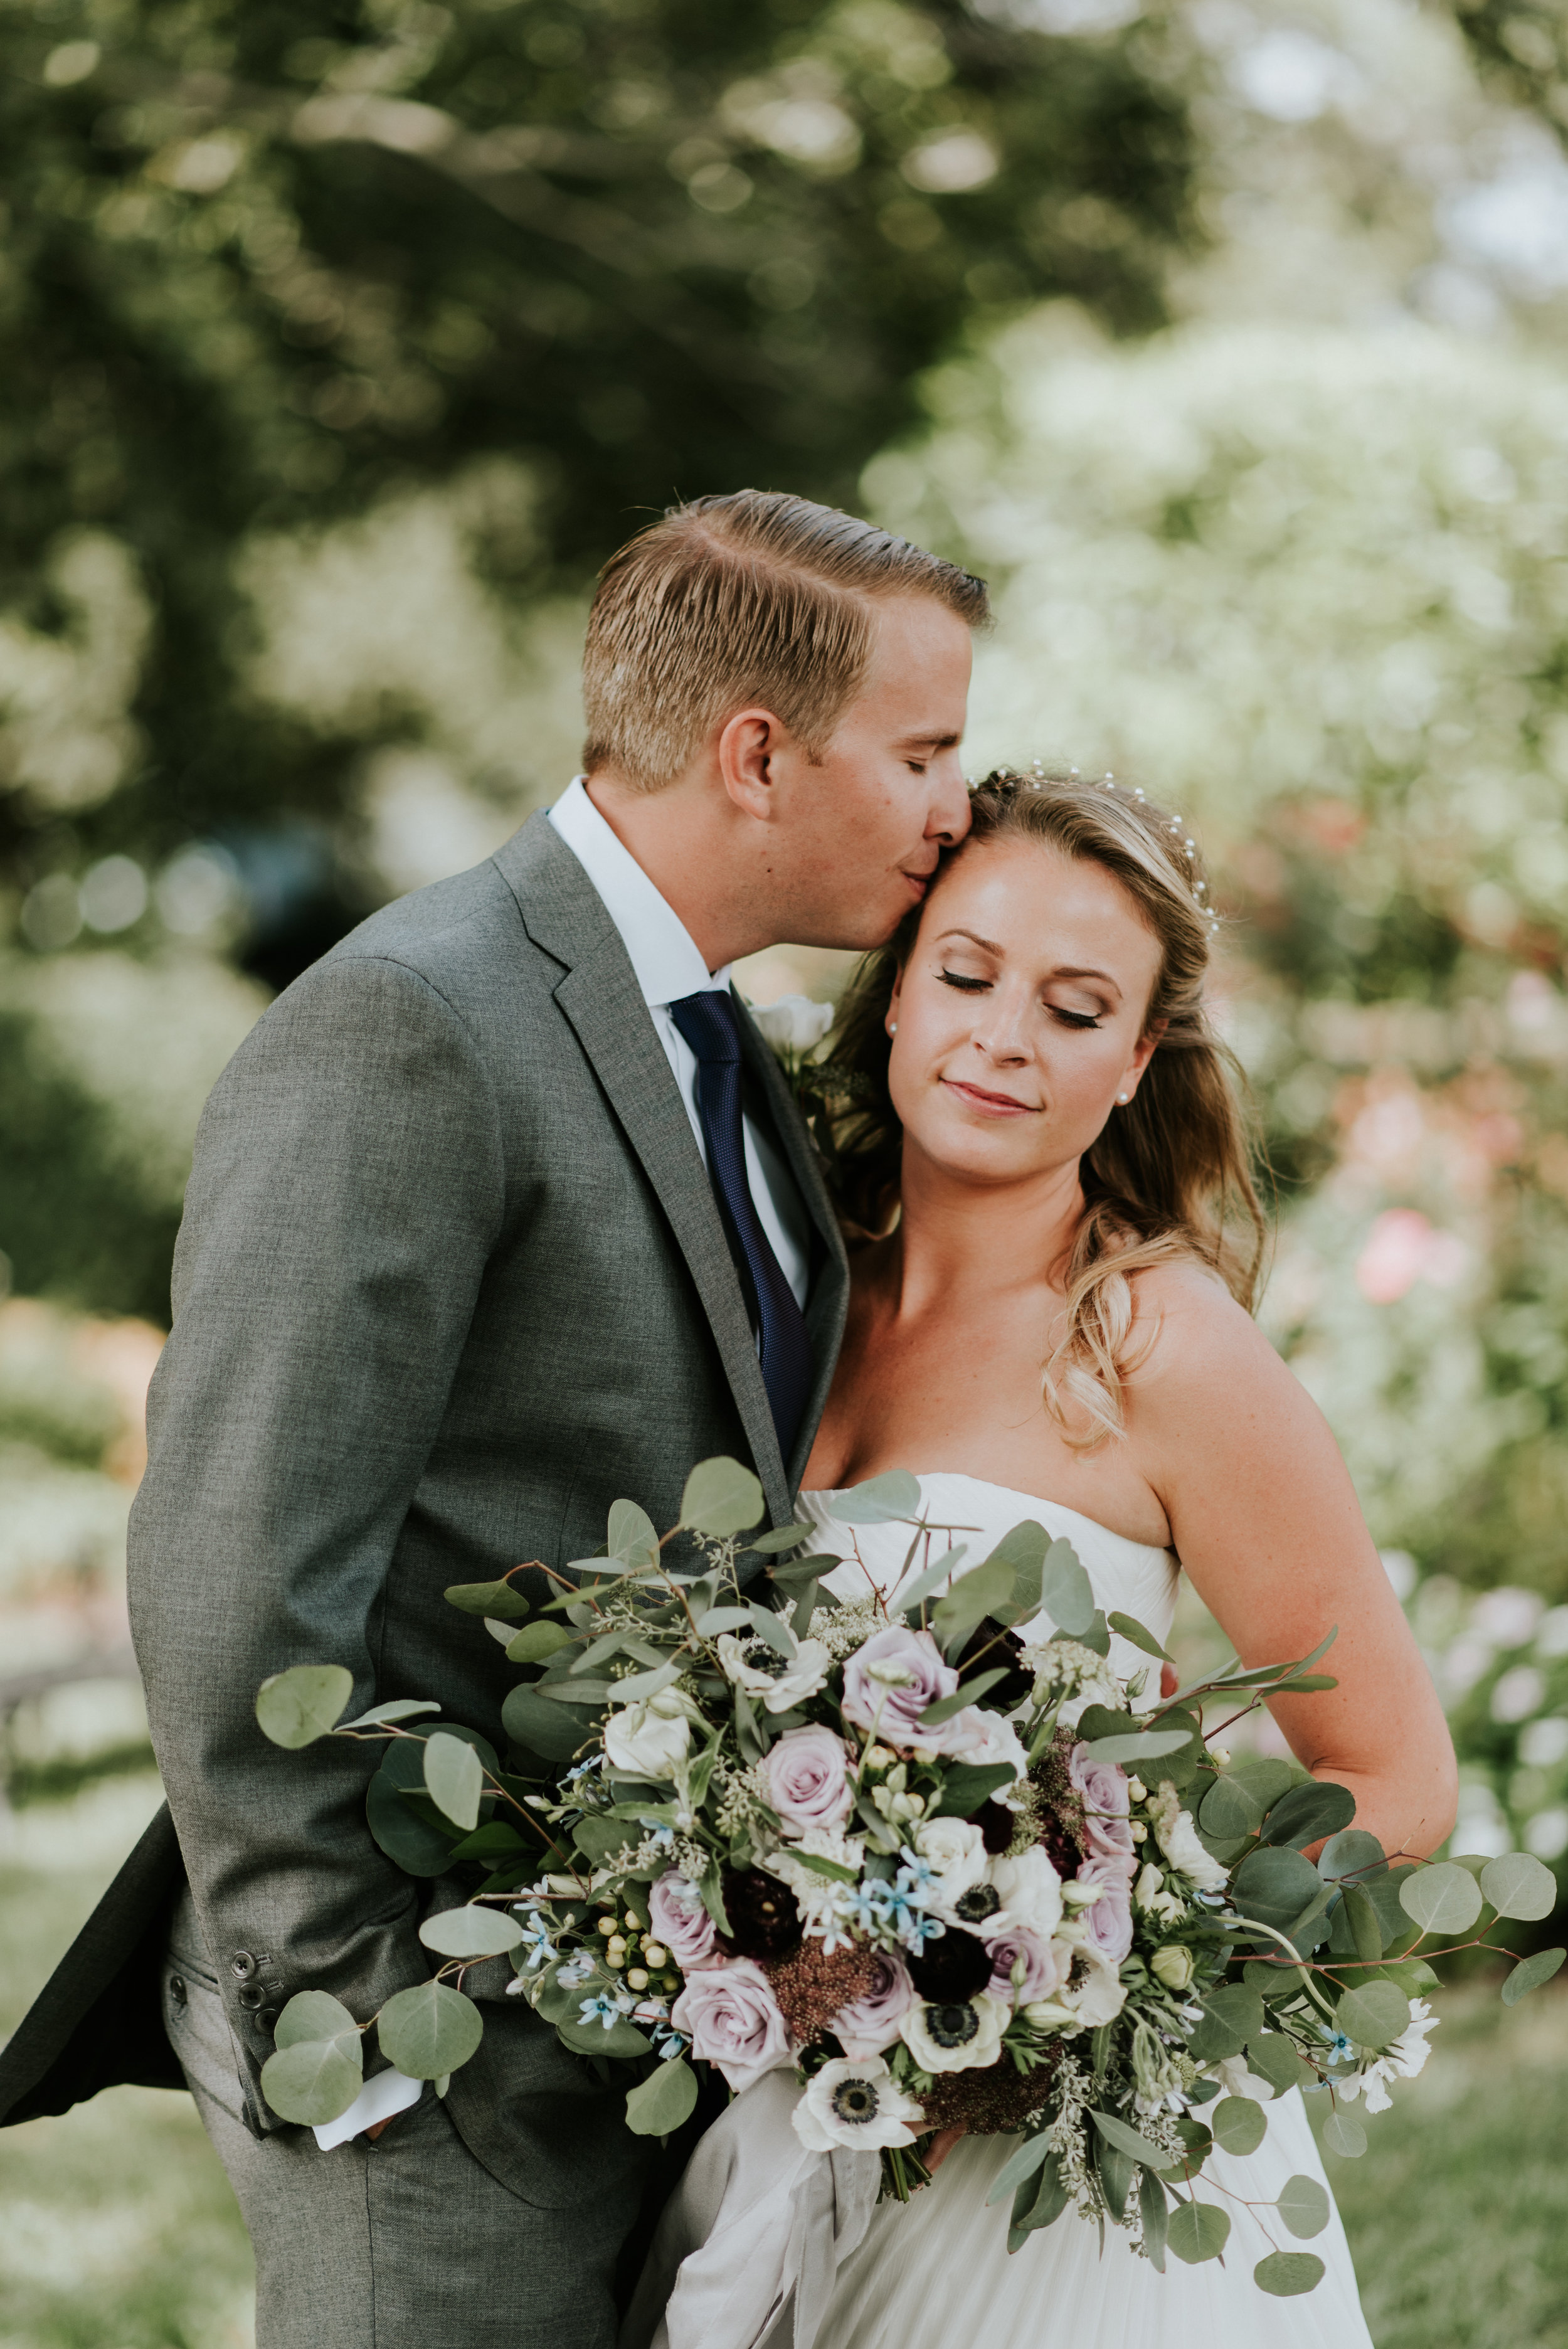 Rustic Oyster Themed Eastern Shore Maryland Outdoor Wedding by East Made Event Company Wedding Planner and Bekah Kay Creative168.jpg